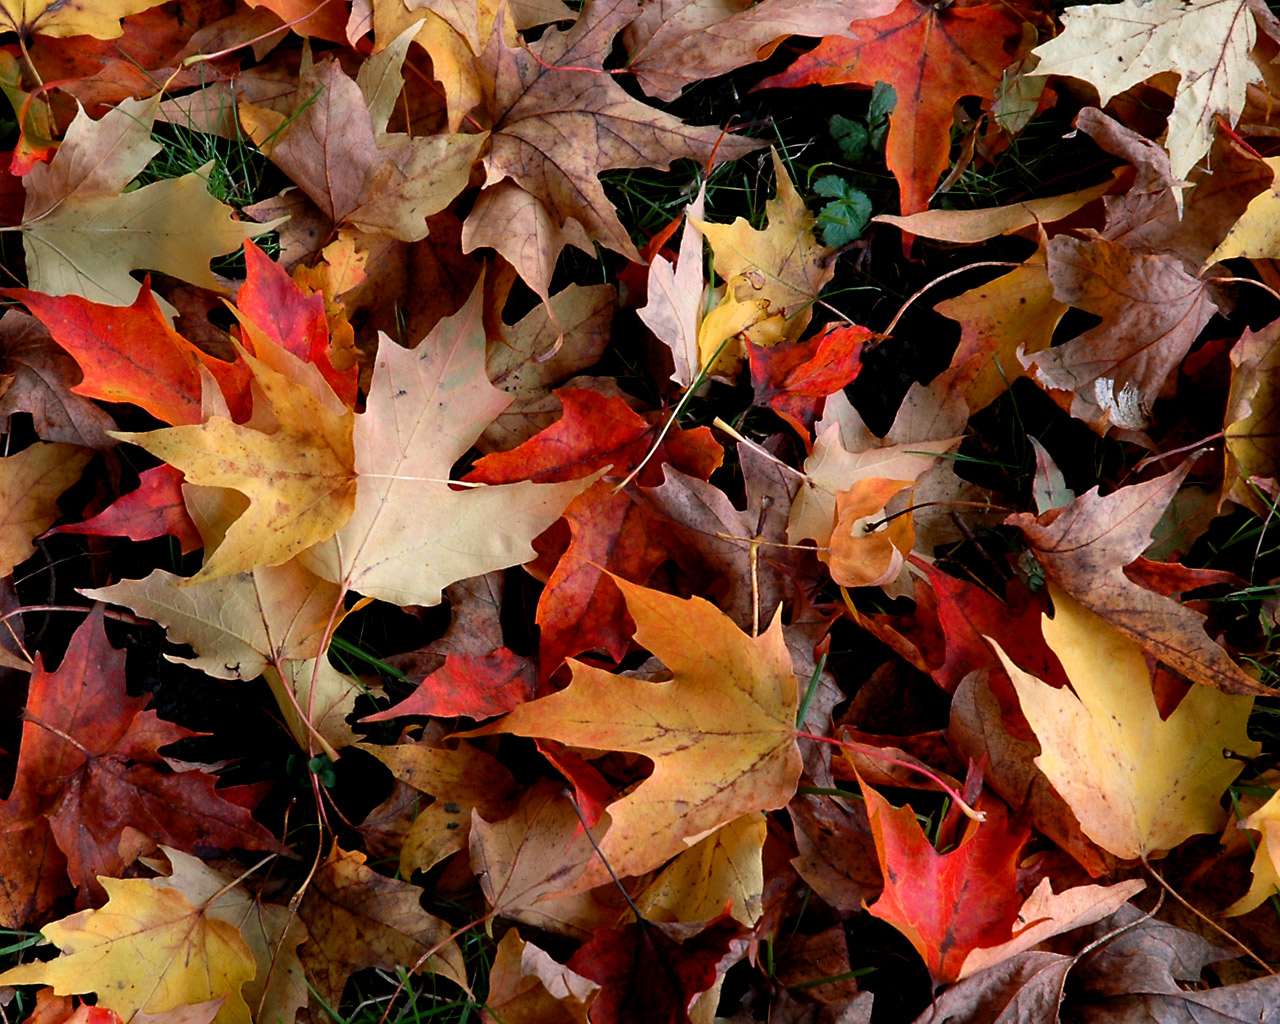 Free Desktop Wallpaper Autumn Leaves: Fall Wallpaper GALERY PHOTO CELEBRITY